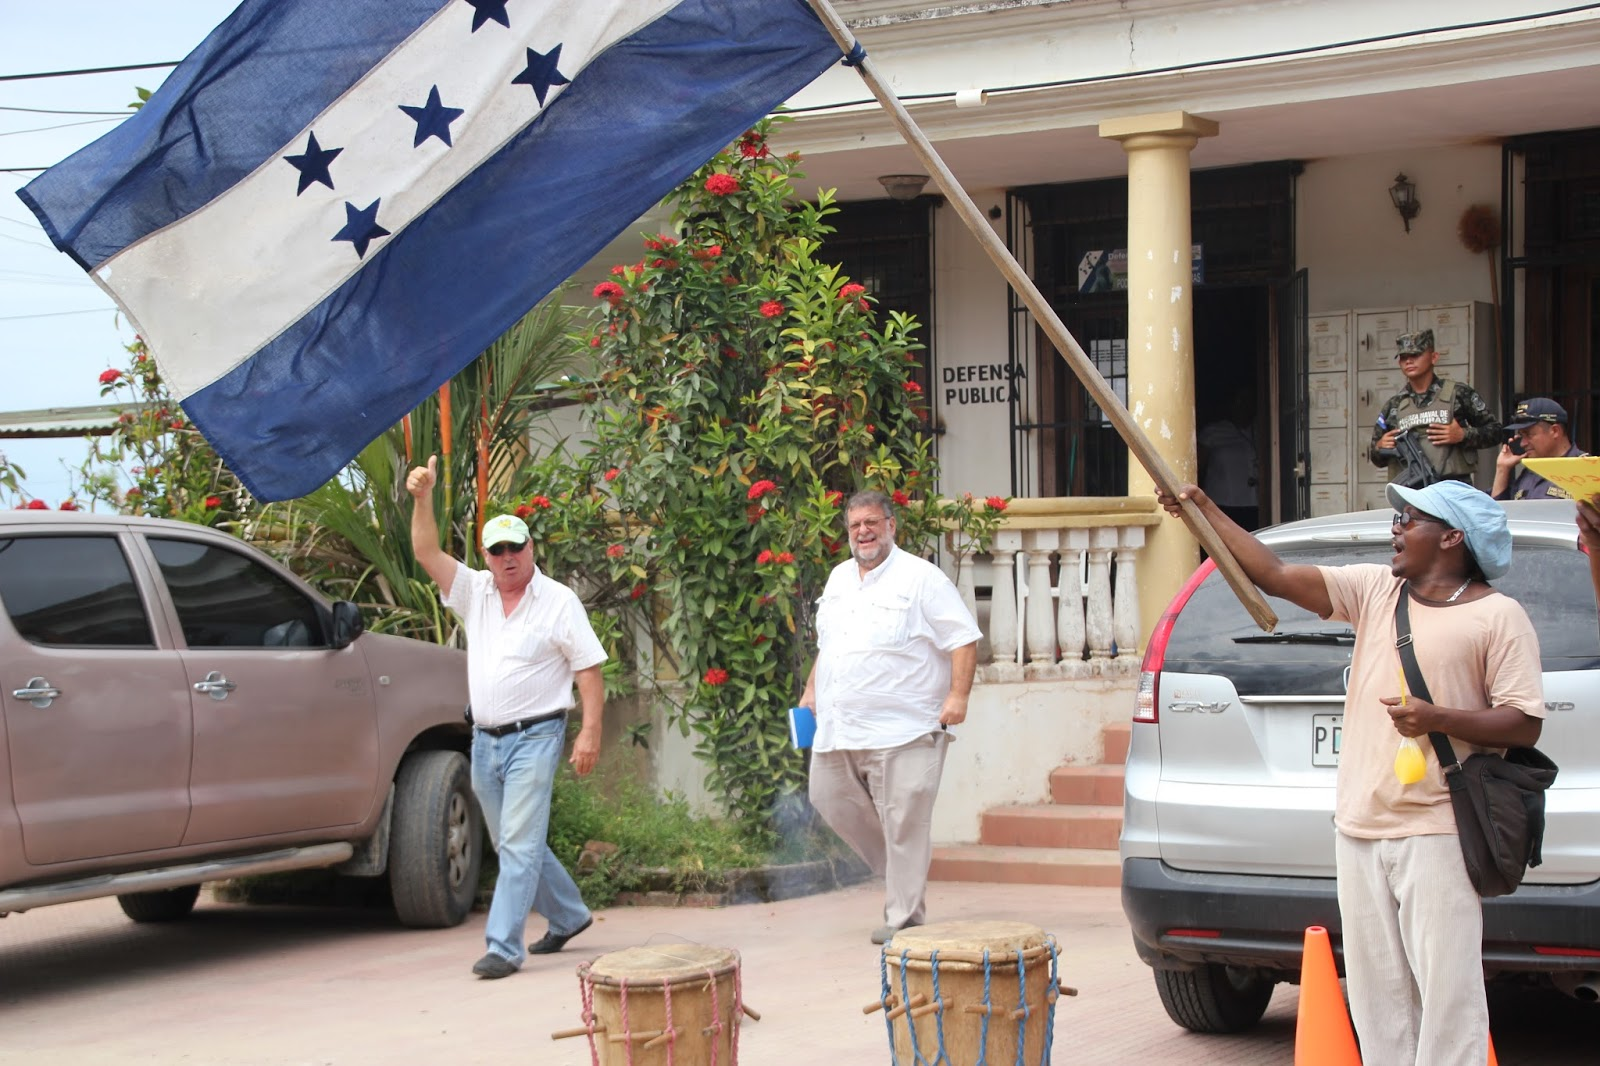 Photo caption: Randy Jorgensen (left) waving obnoxiously to the Garifuna community waiting outside the courthouse to hear the results. Hernan Batres (middle), the General Manager of the cruise ship terminal constructed by Jorgensen's second company in Trujillo, Banana Coast, accompanied Jorgensen to the hearing.